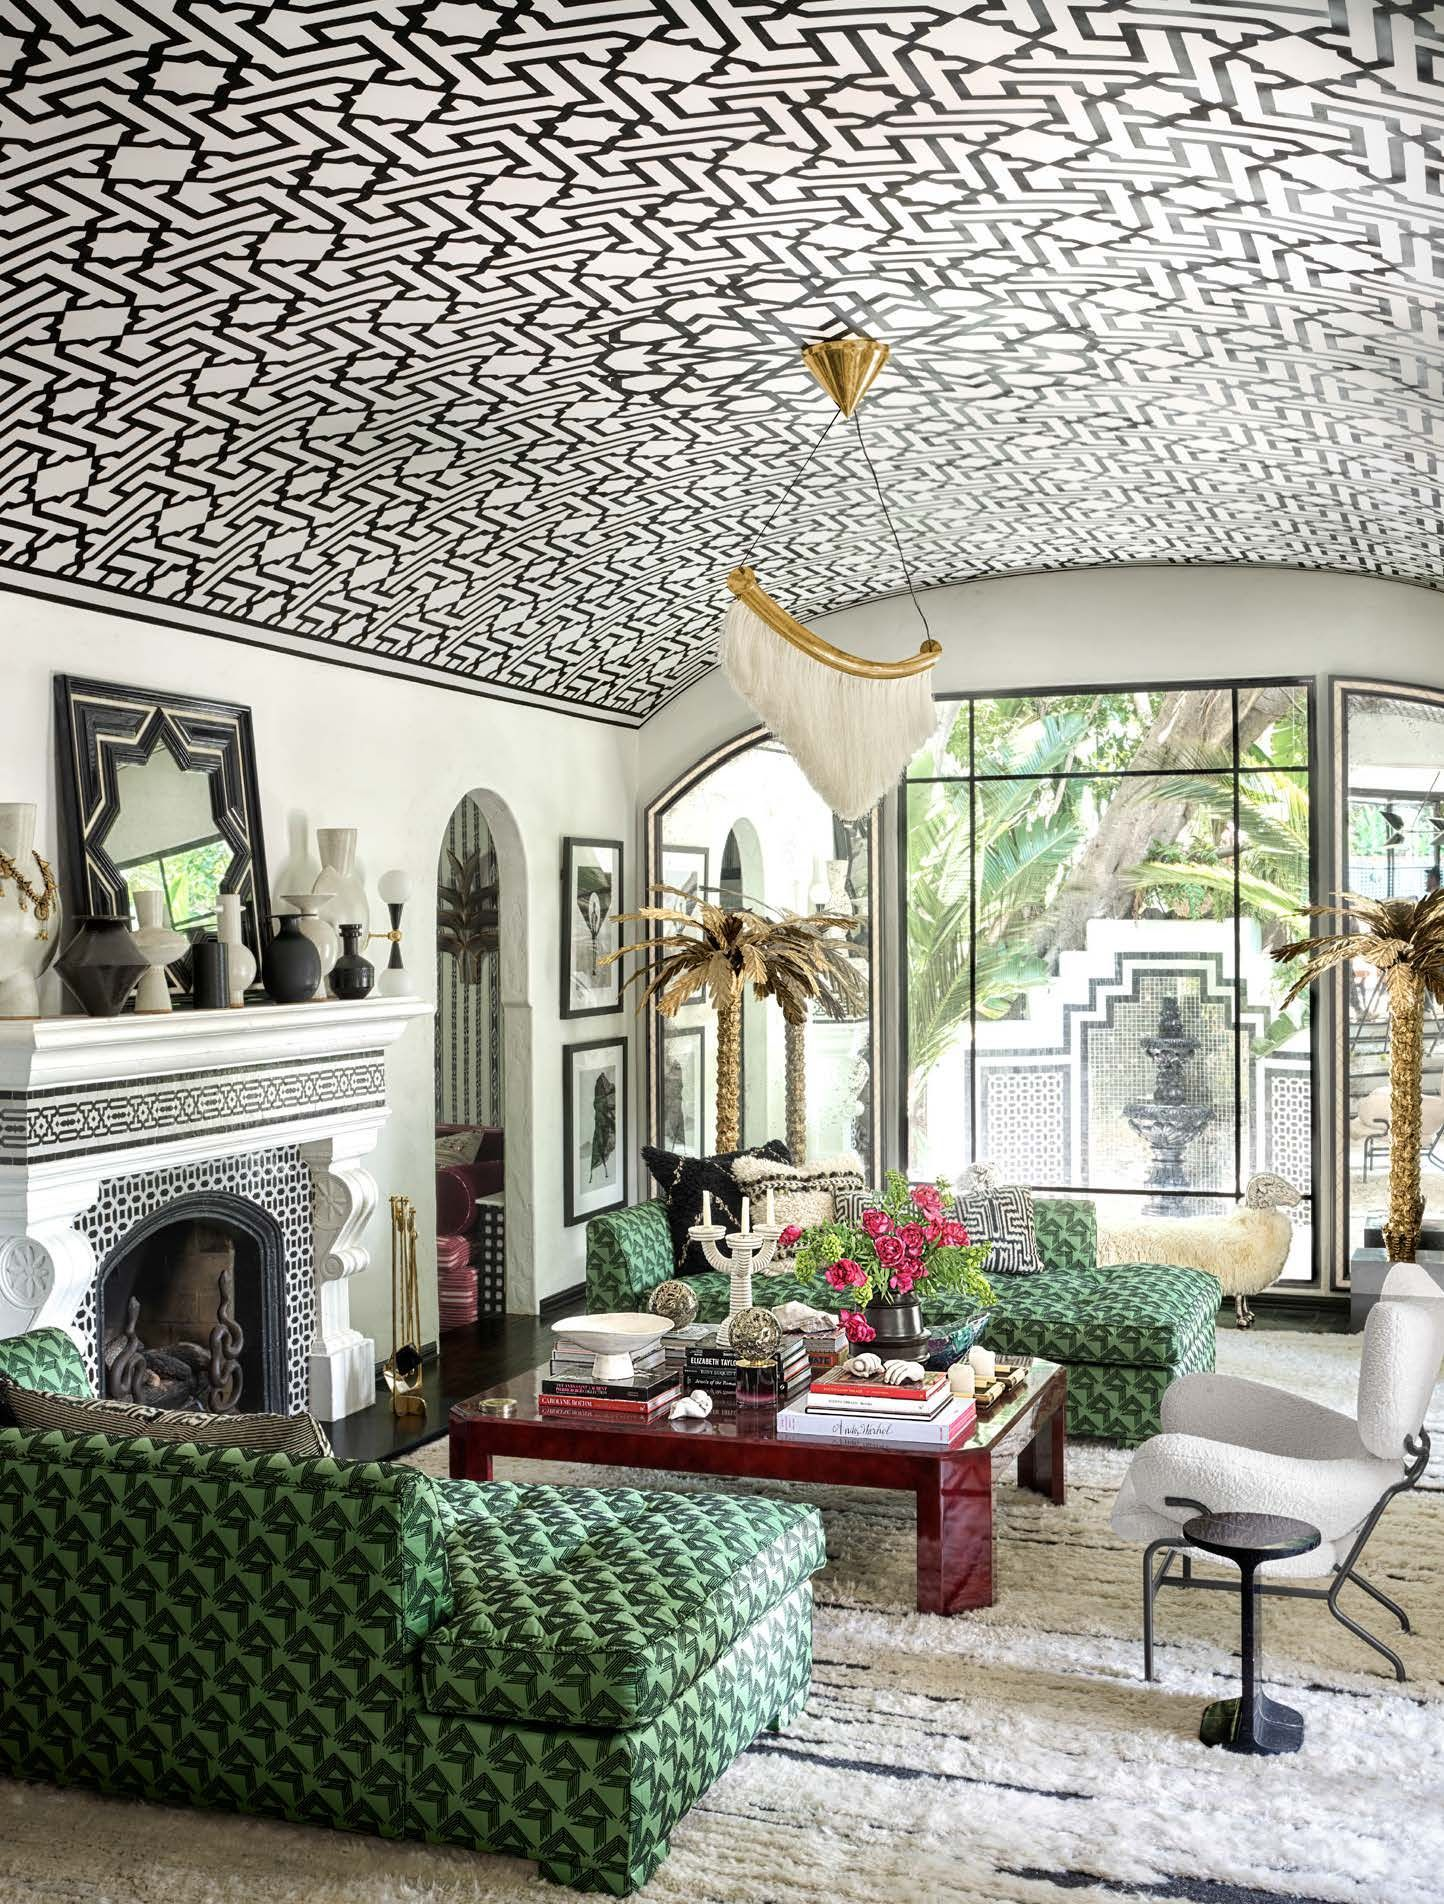 Patterned. +70 Unique Ceiling Design Ideas for Your Living Room